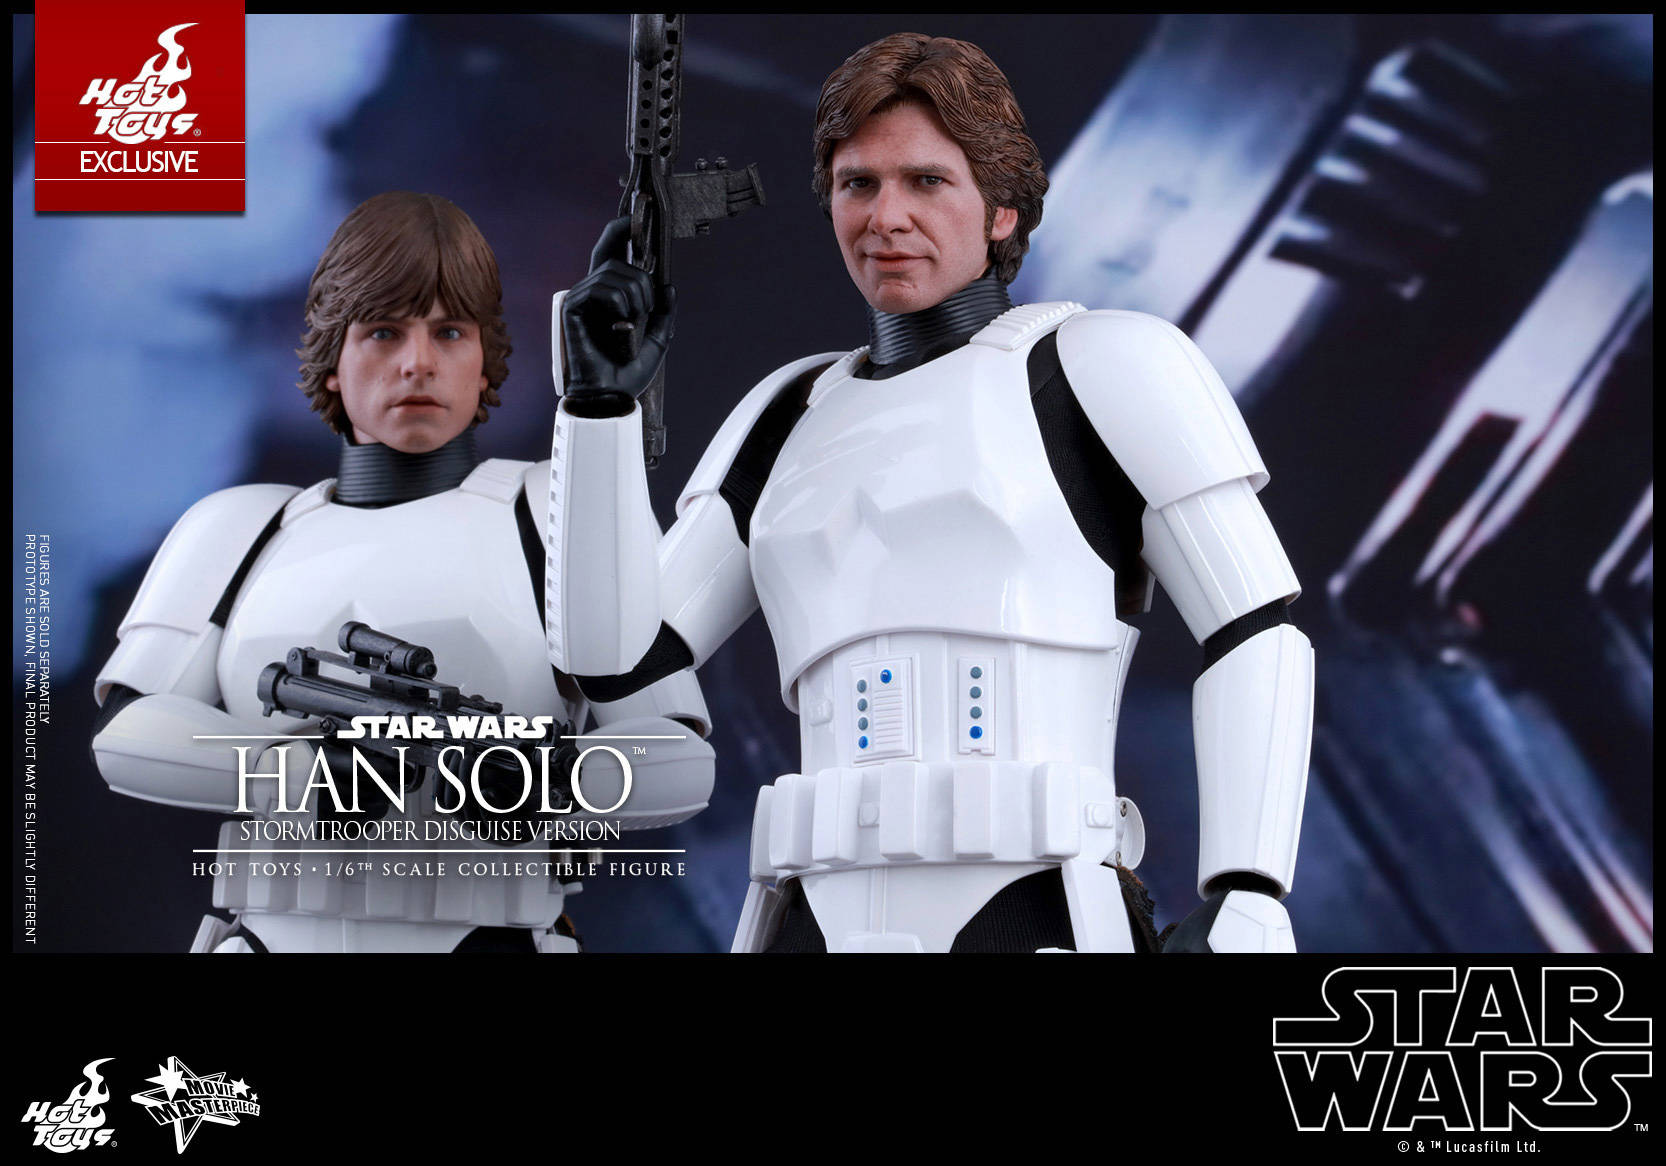 Hot-Toys---Star-Wars---Han-Solo-(Stormtrooper-Disguise-Version)-Collectible-Figure PR13